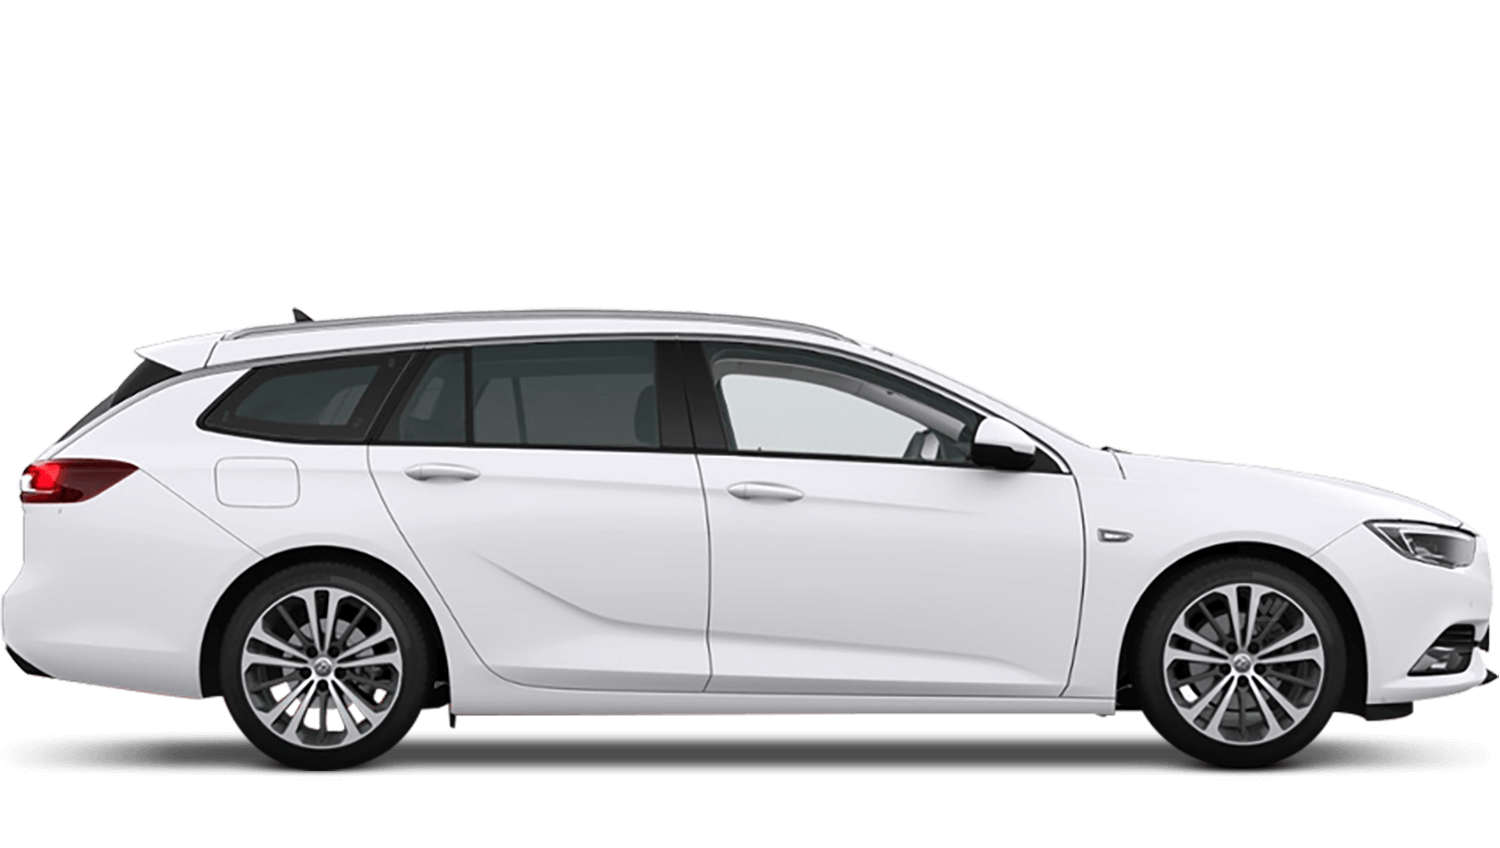 Summit White (Brilliant) Vauxhall Insignia Sports Tourer